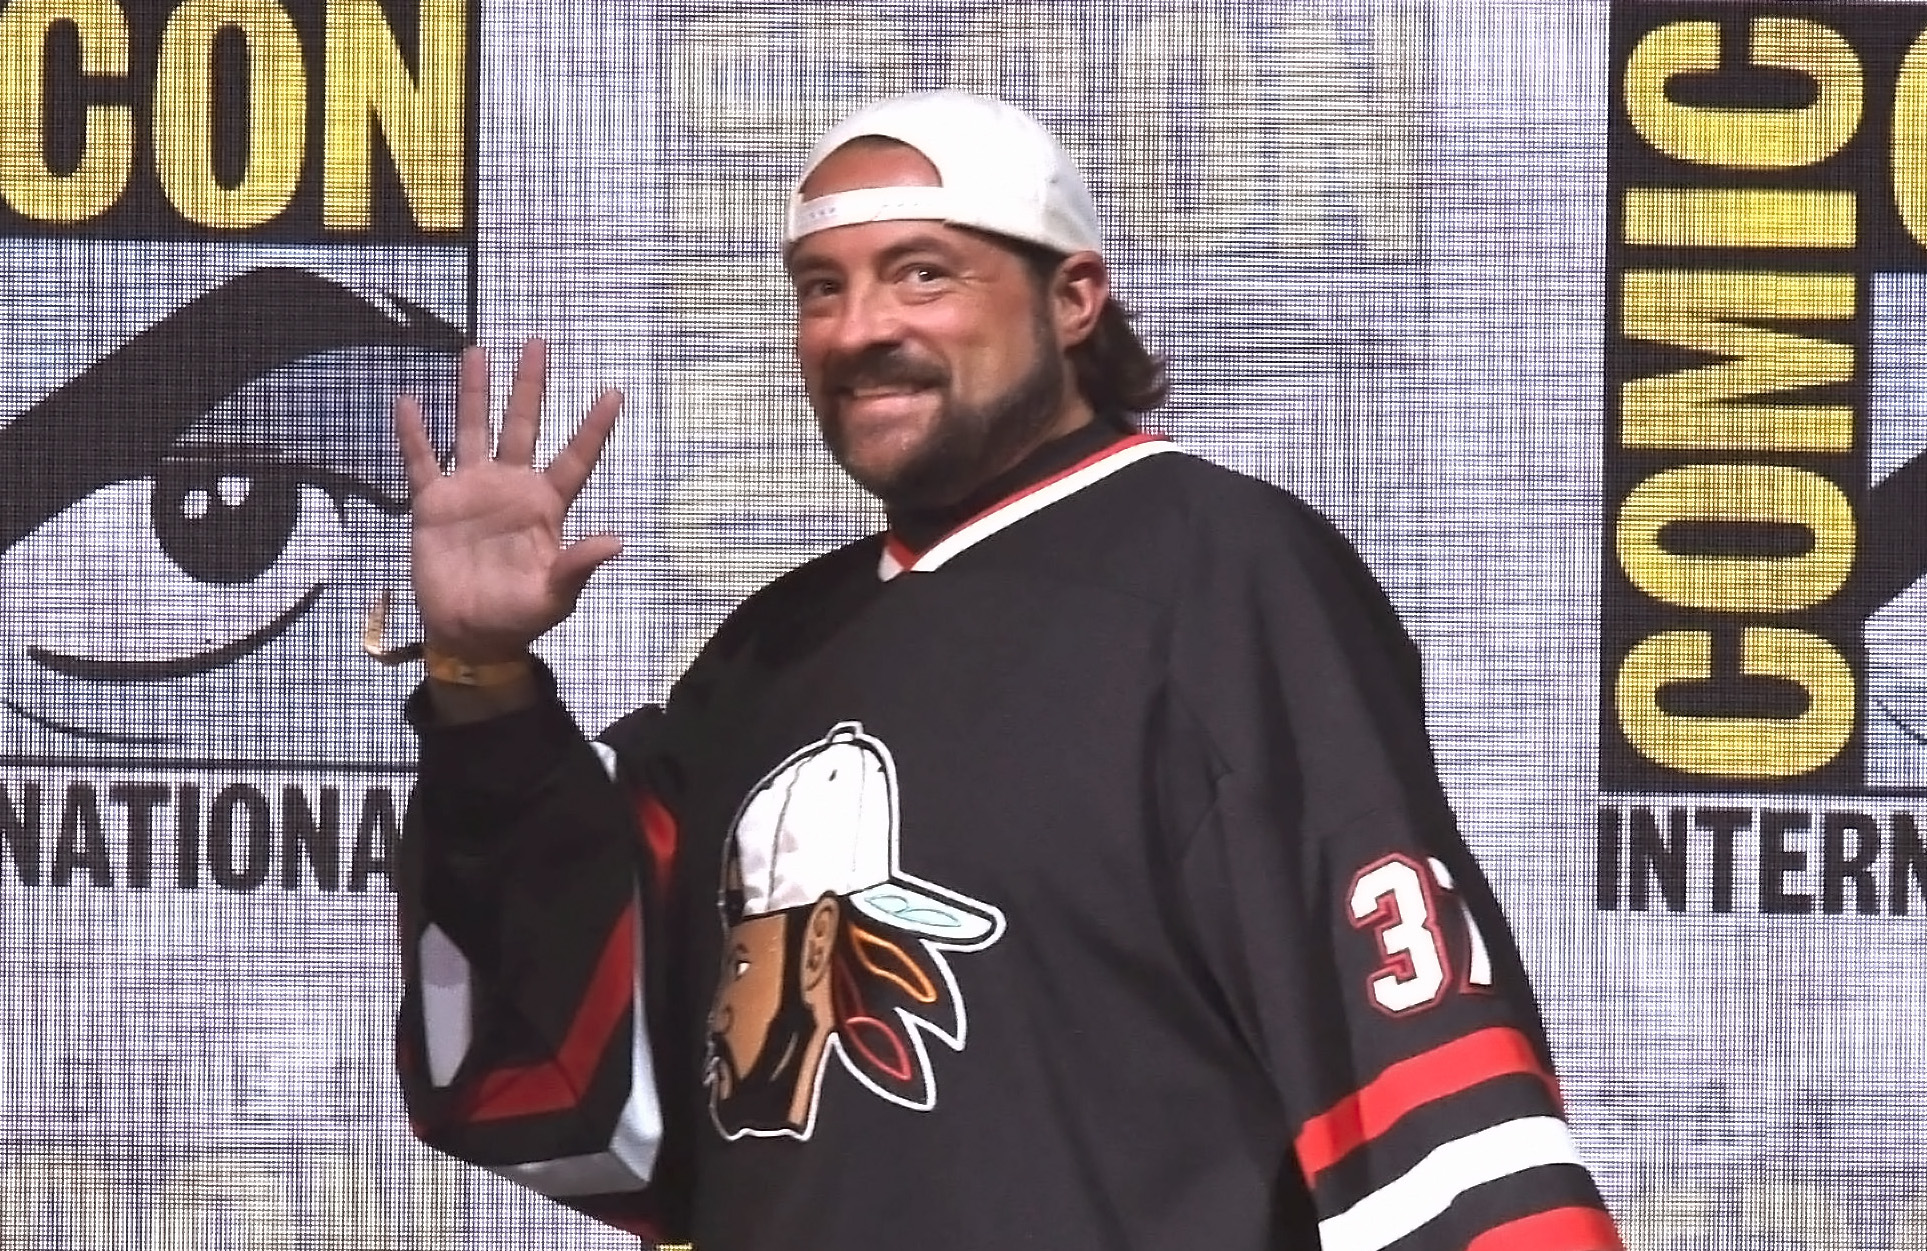 You, too, can wear Kevin Smith's old jerseys (for charity), thanks ...